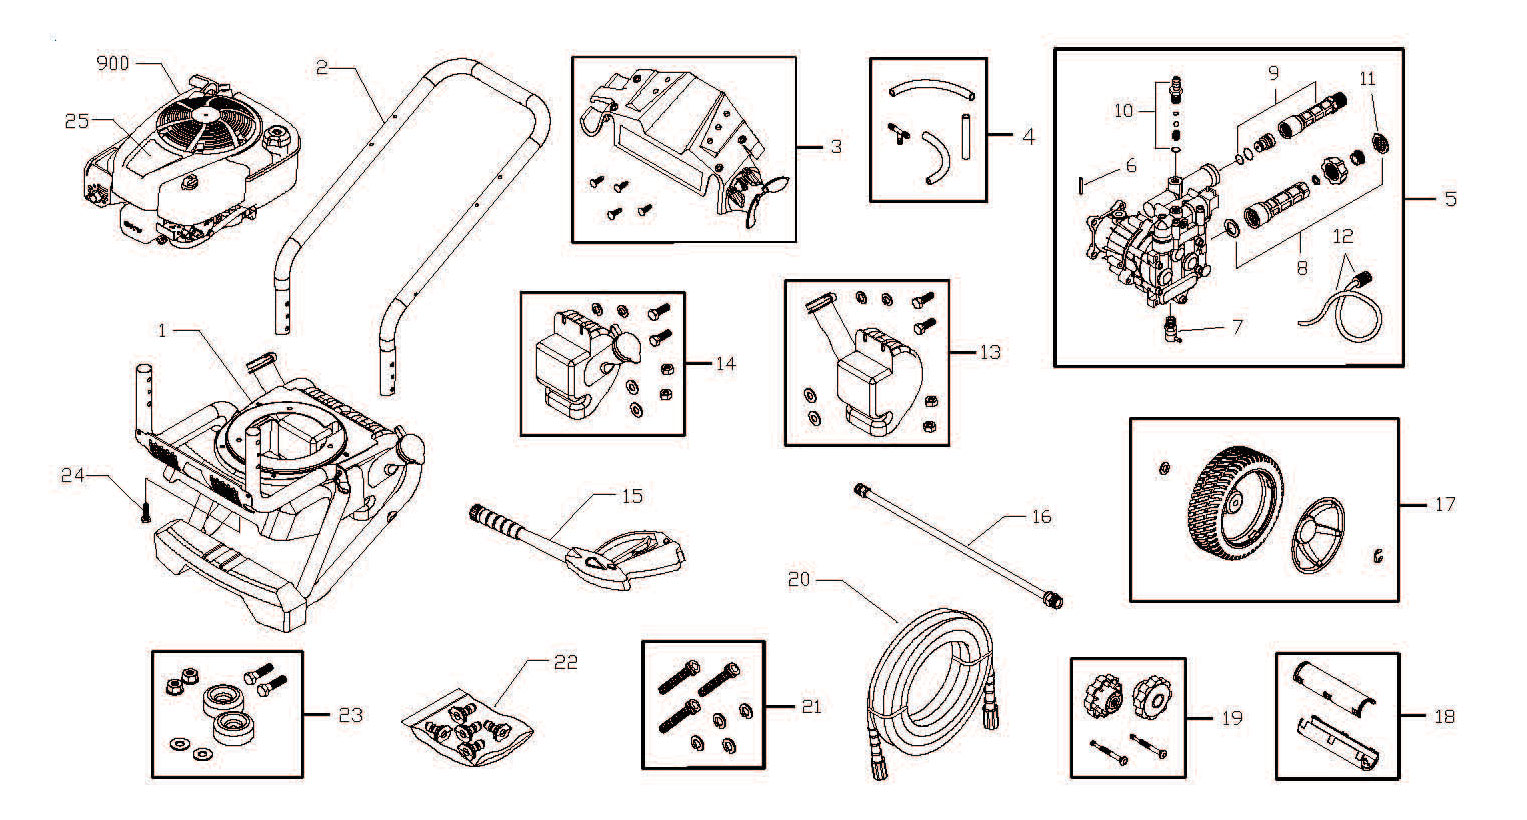 troy bilt pressure washer parts diagram dogfish muscle 020416